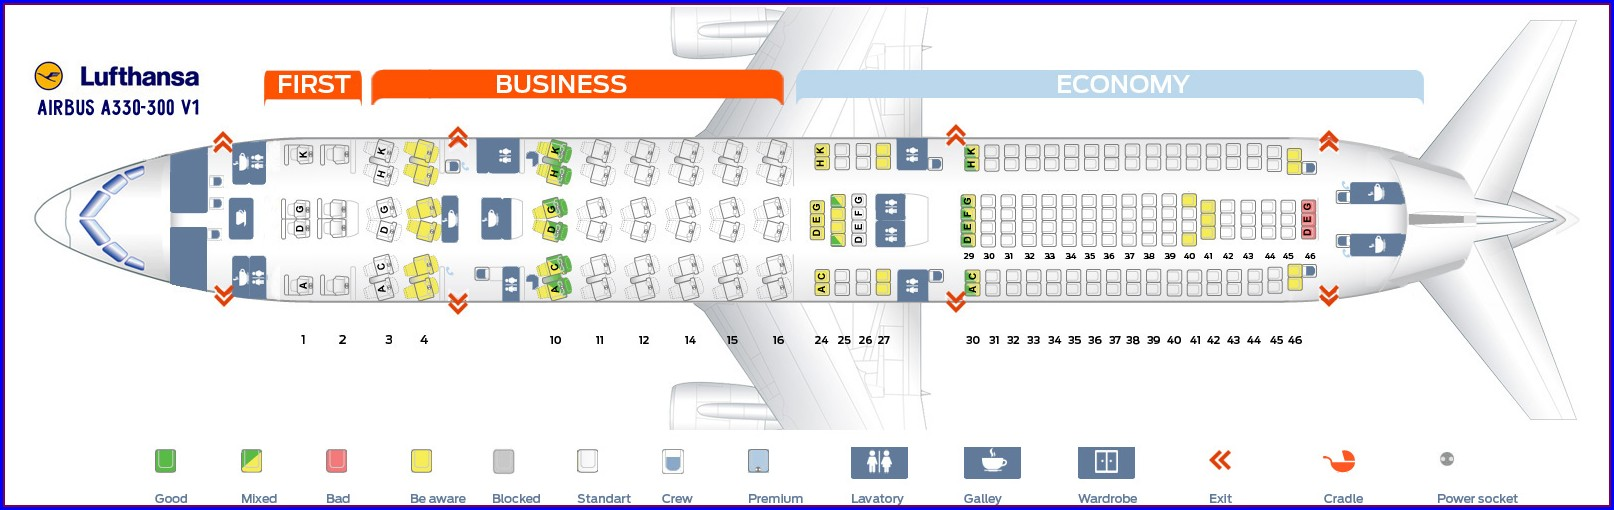 333 Airplane Seat Map